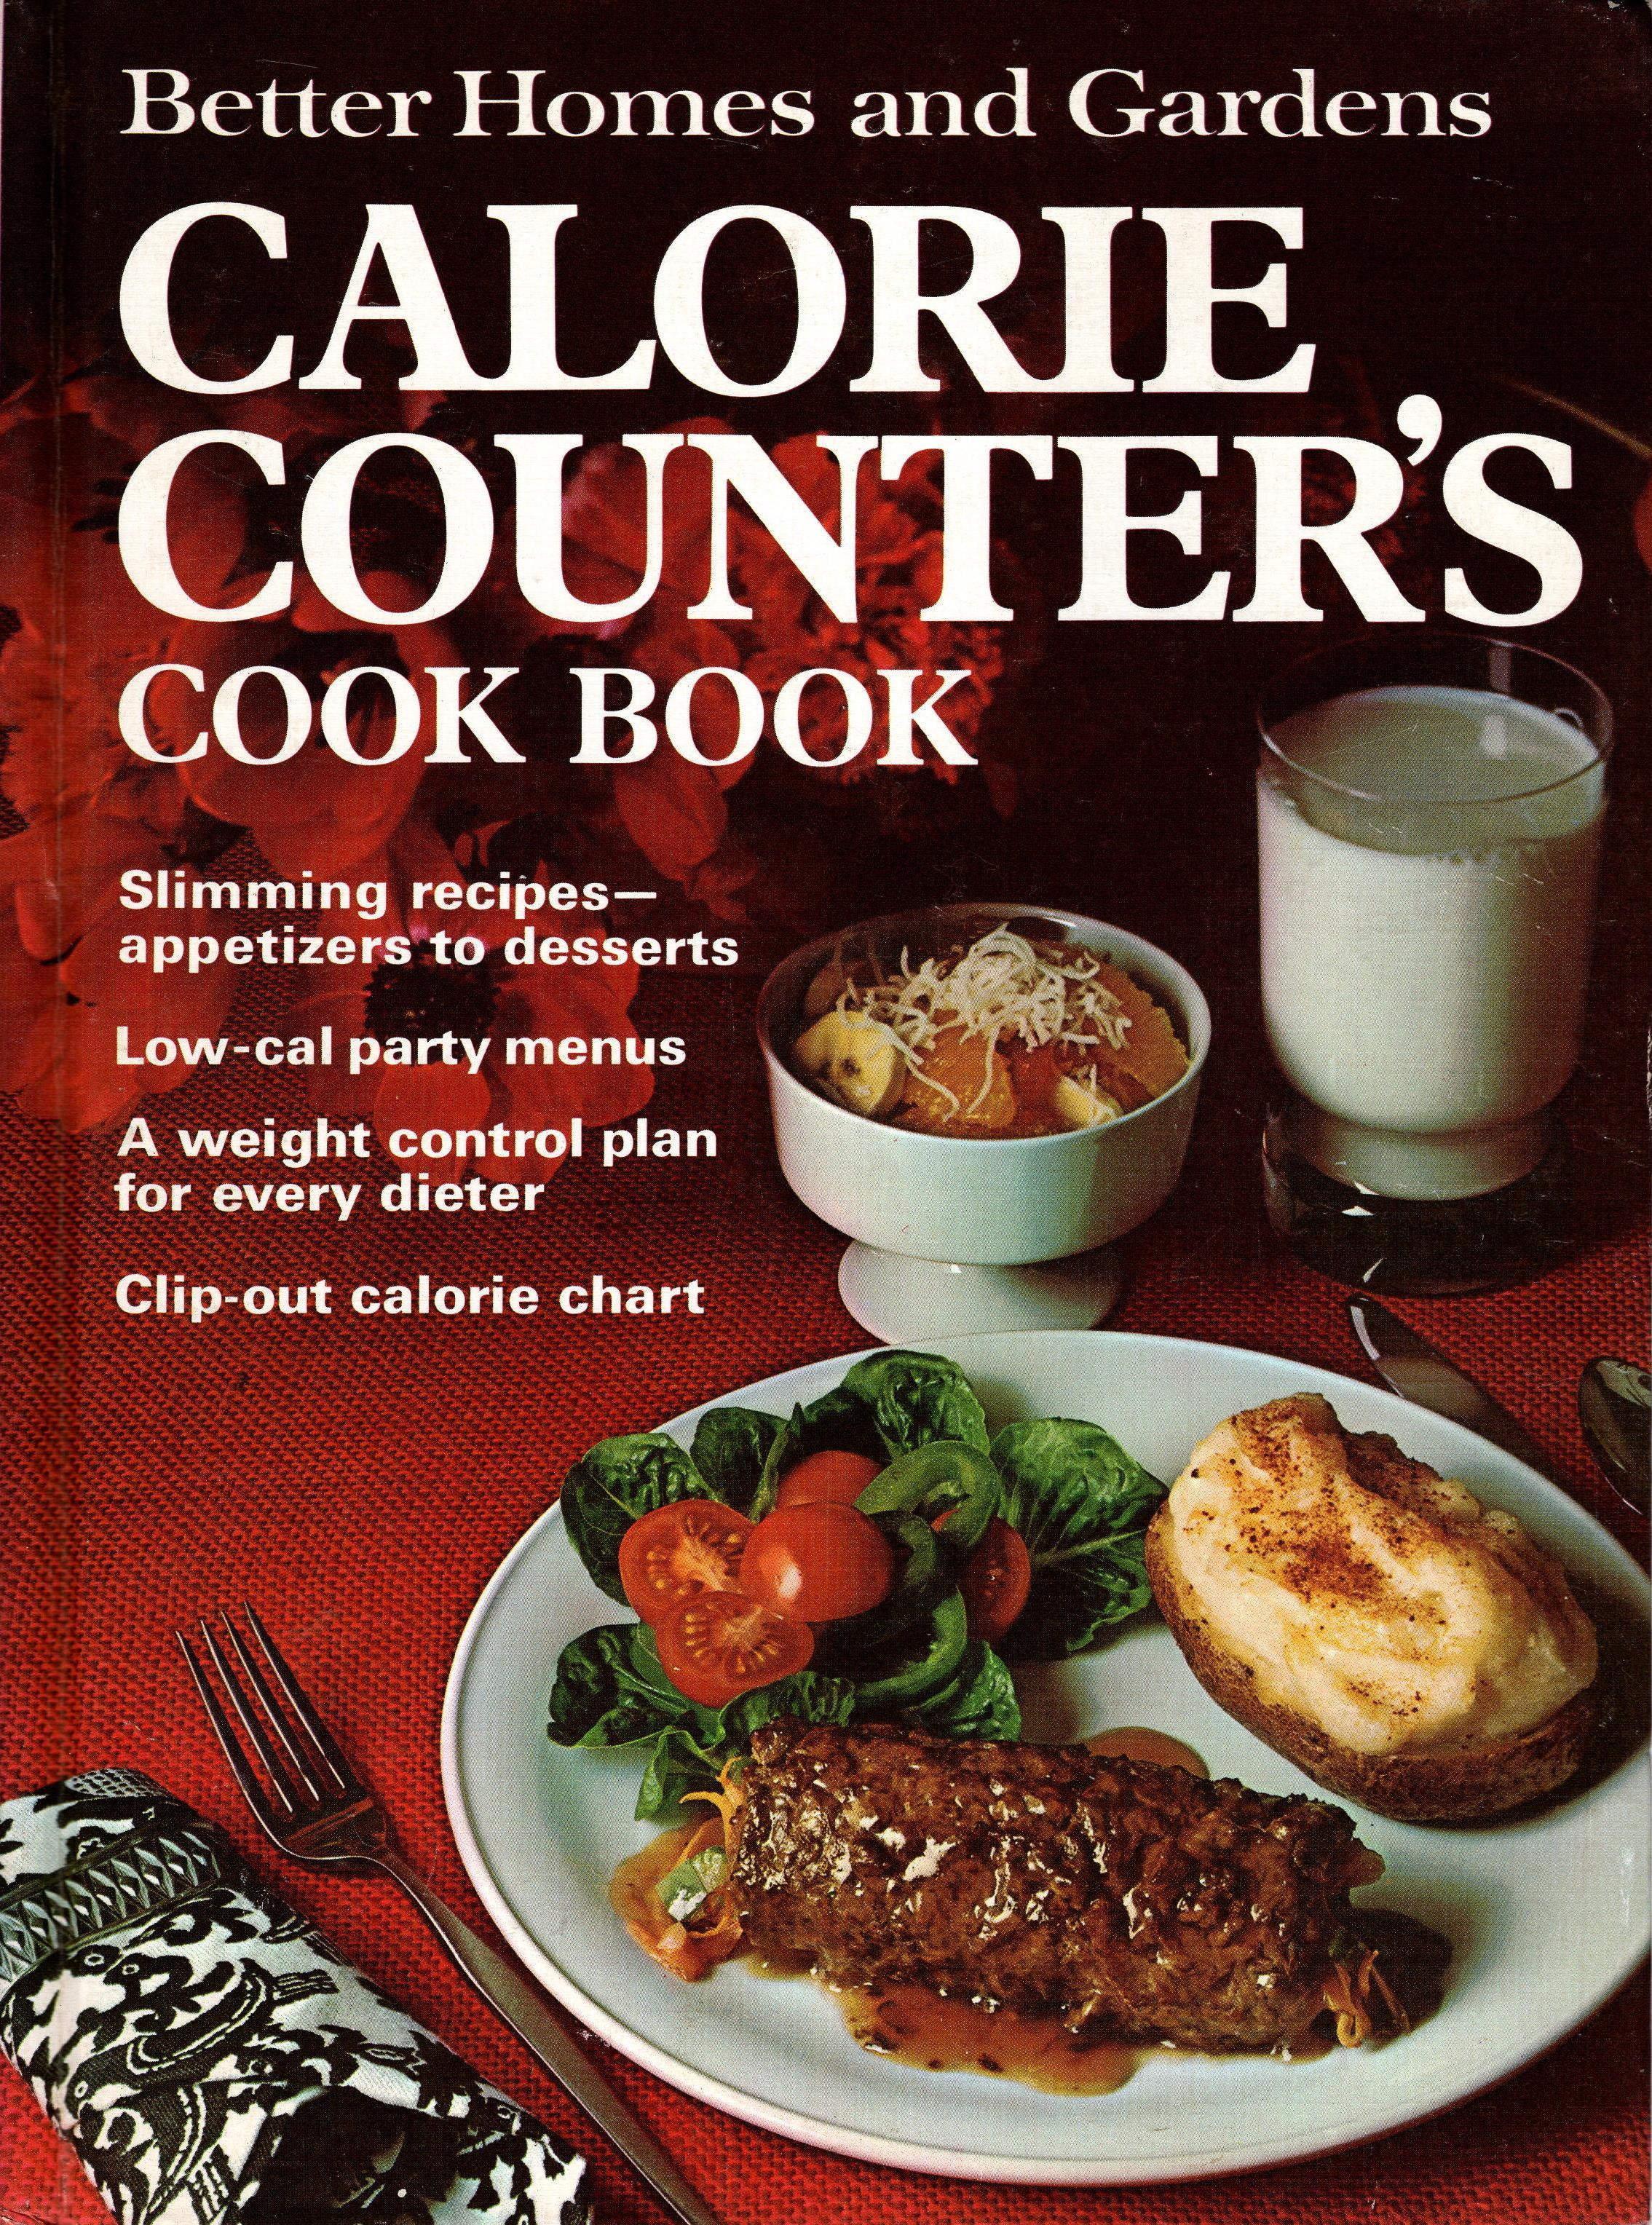 Image for BETTER HOMES AND GARDENS CALORIE COUNTER'S COOK BOOK